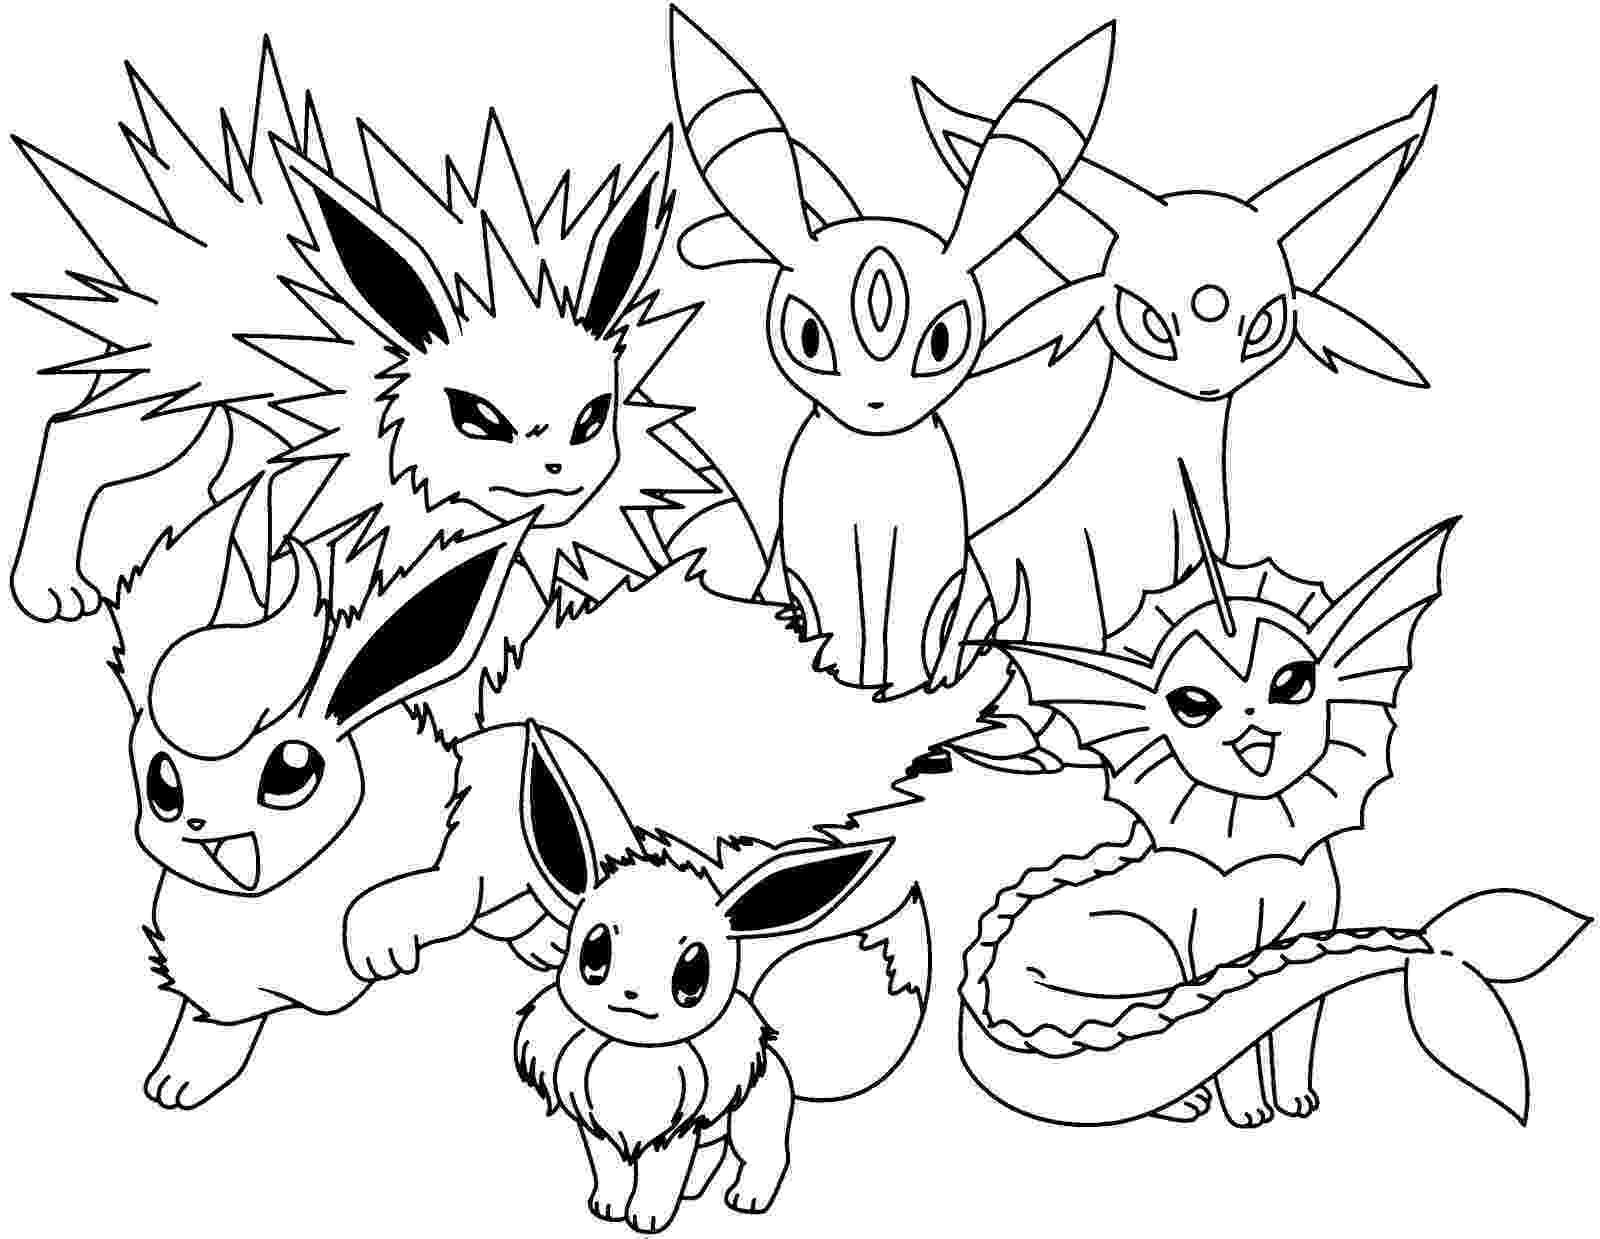 eevee printable coloring pages eevee coloring pages to download and print for free eevee coloring pages printable